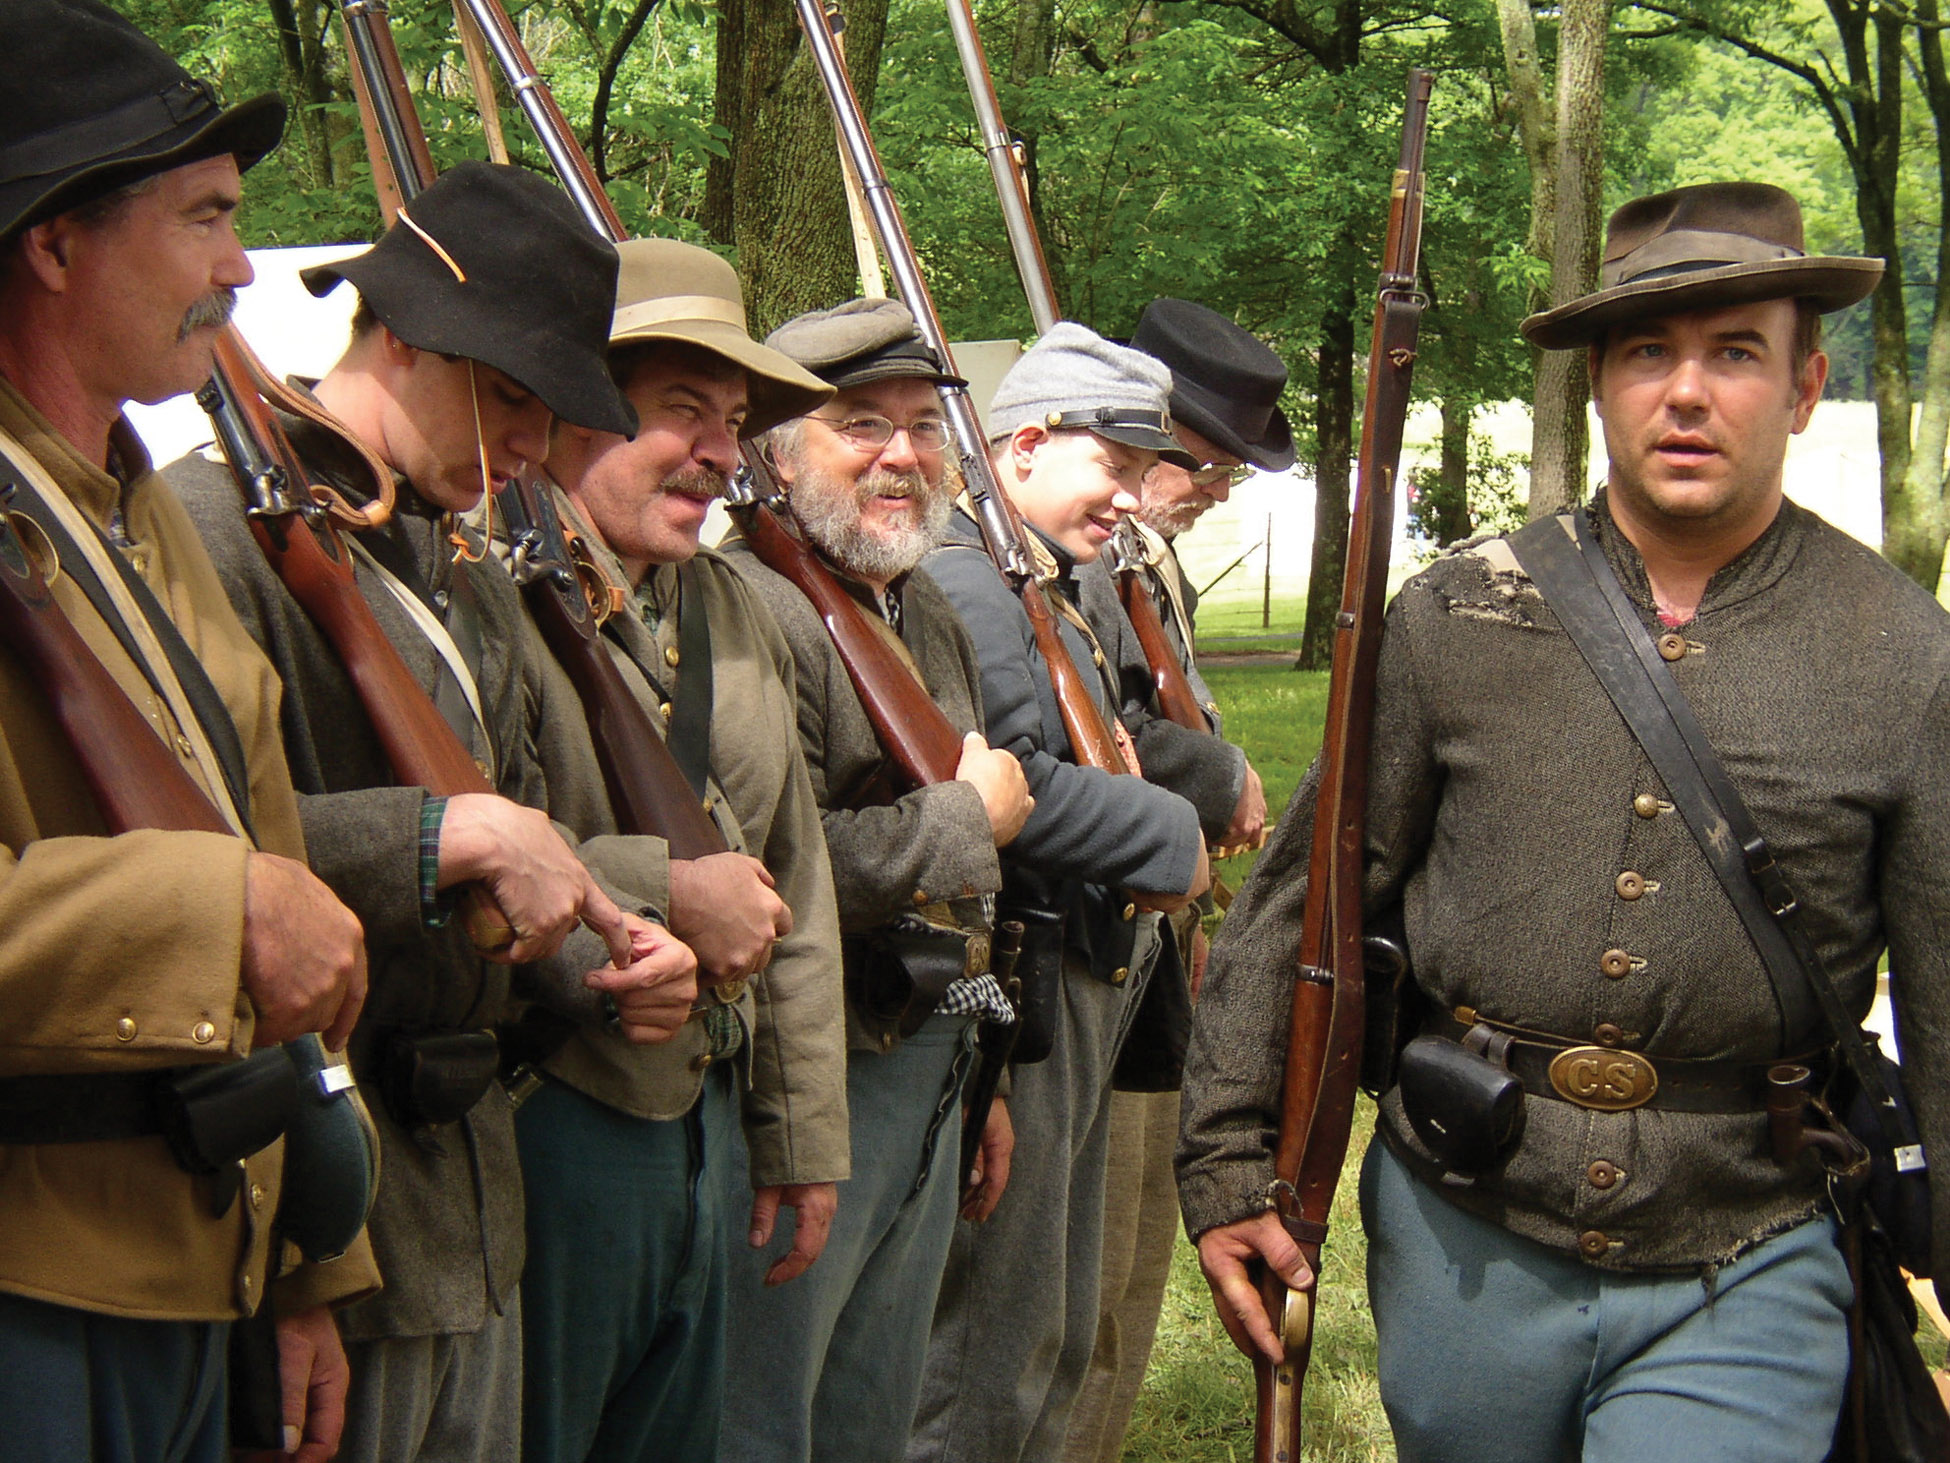 The Civil War comes to life at Pennypacker Mills this weekend.